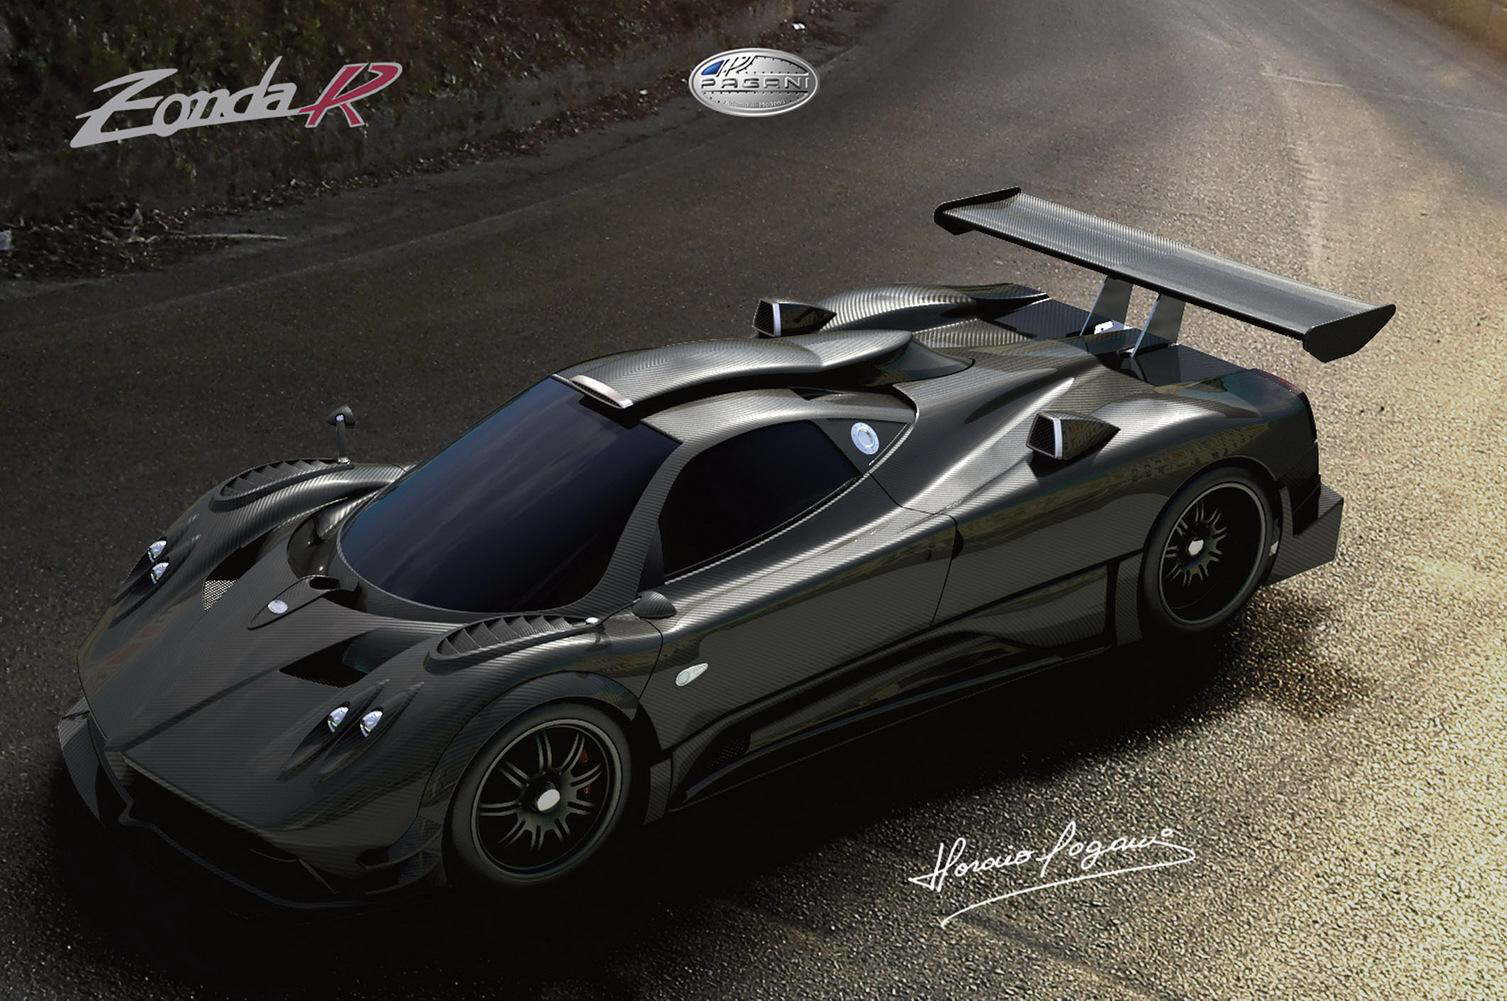 77e62_pagani-zonda-r-wallpaper1